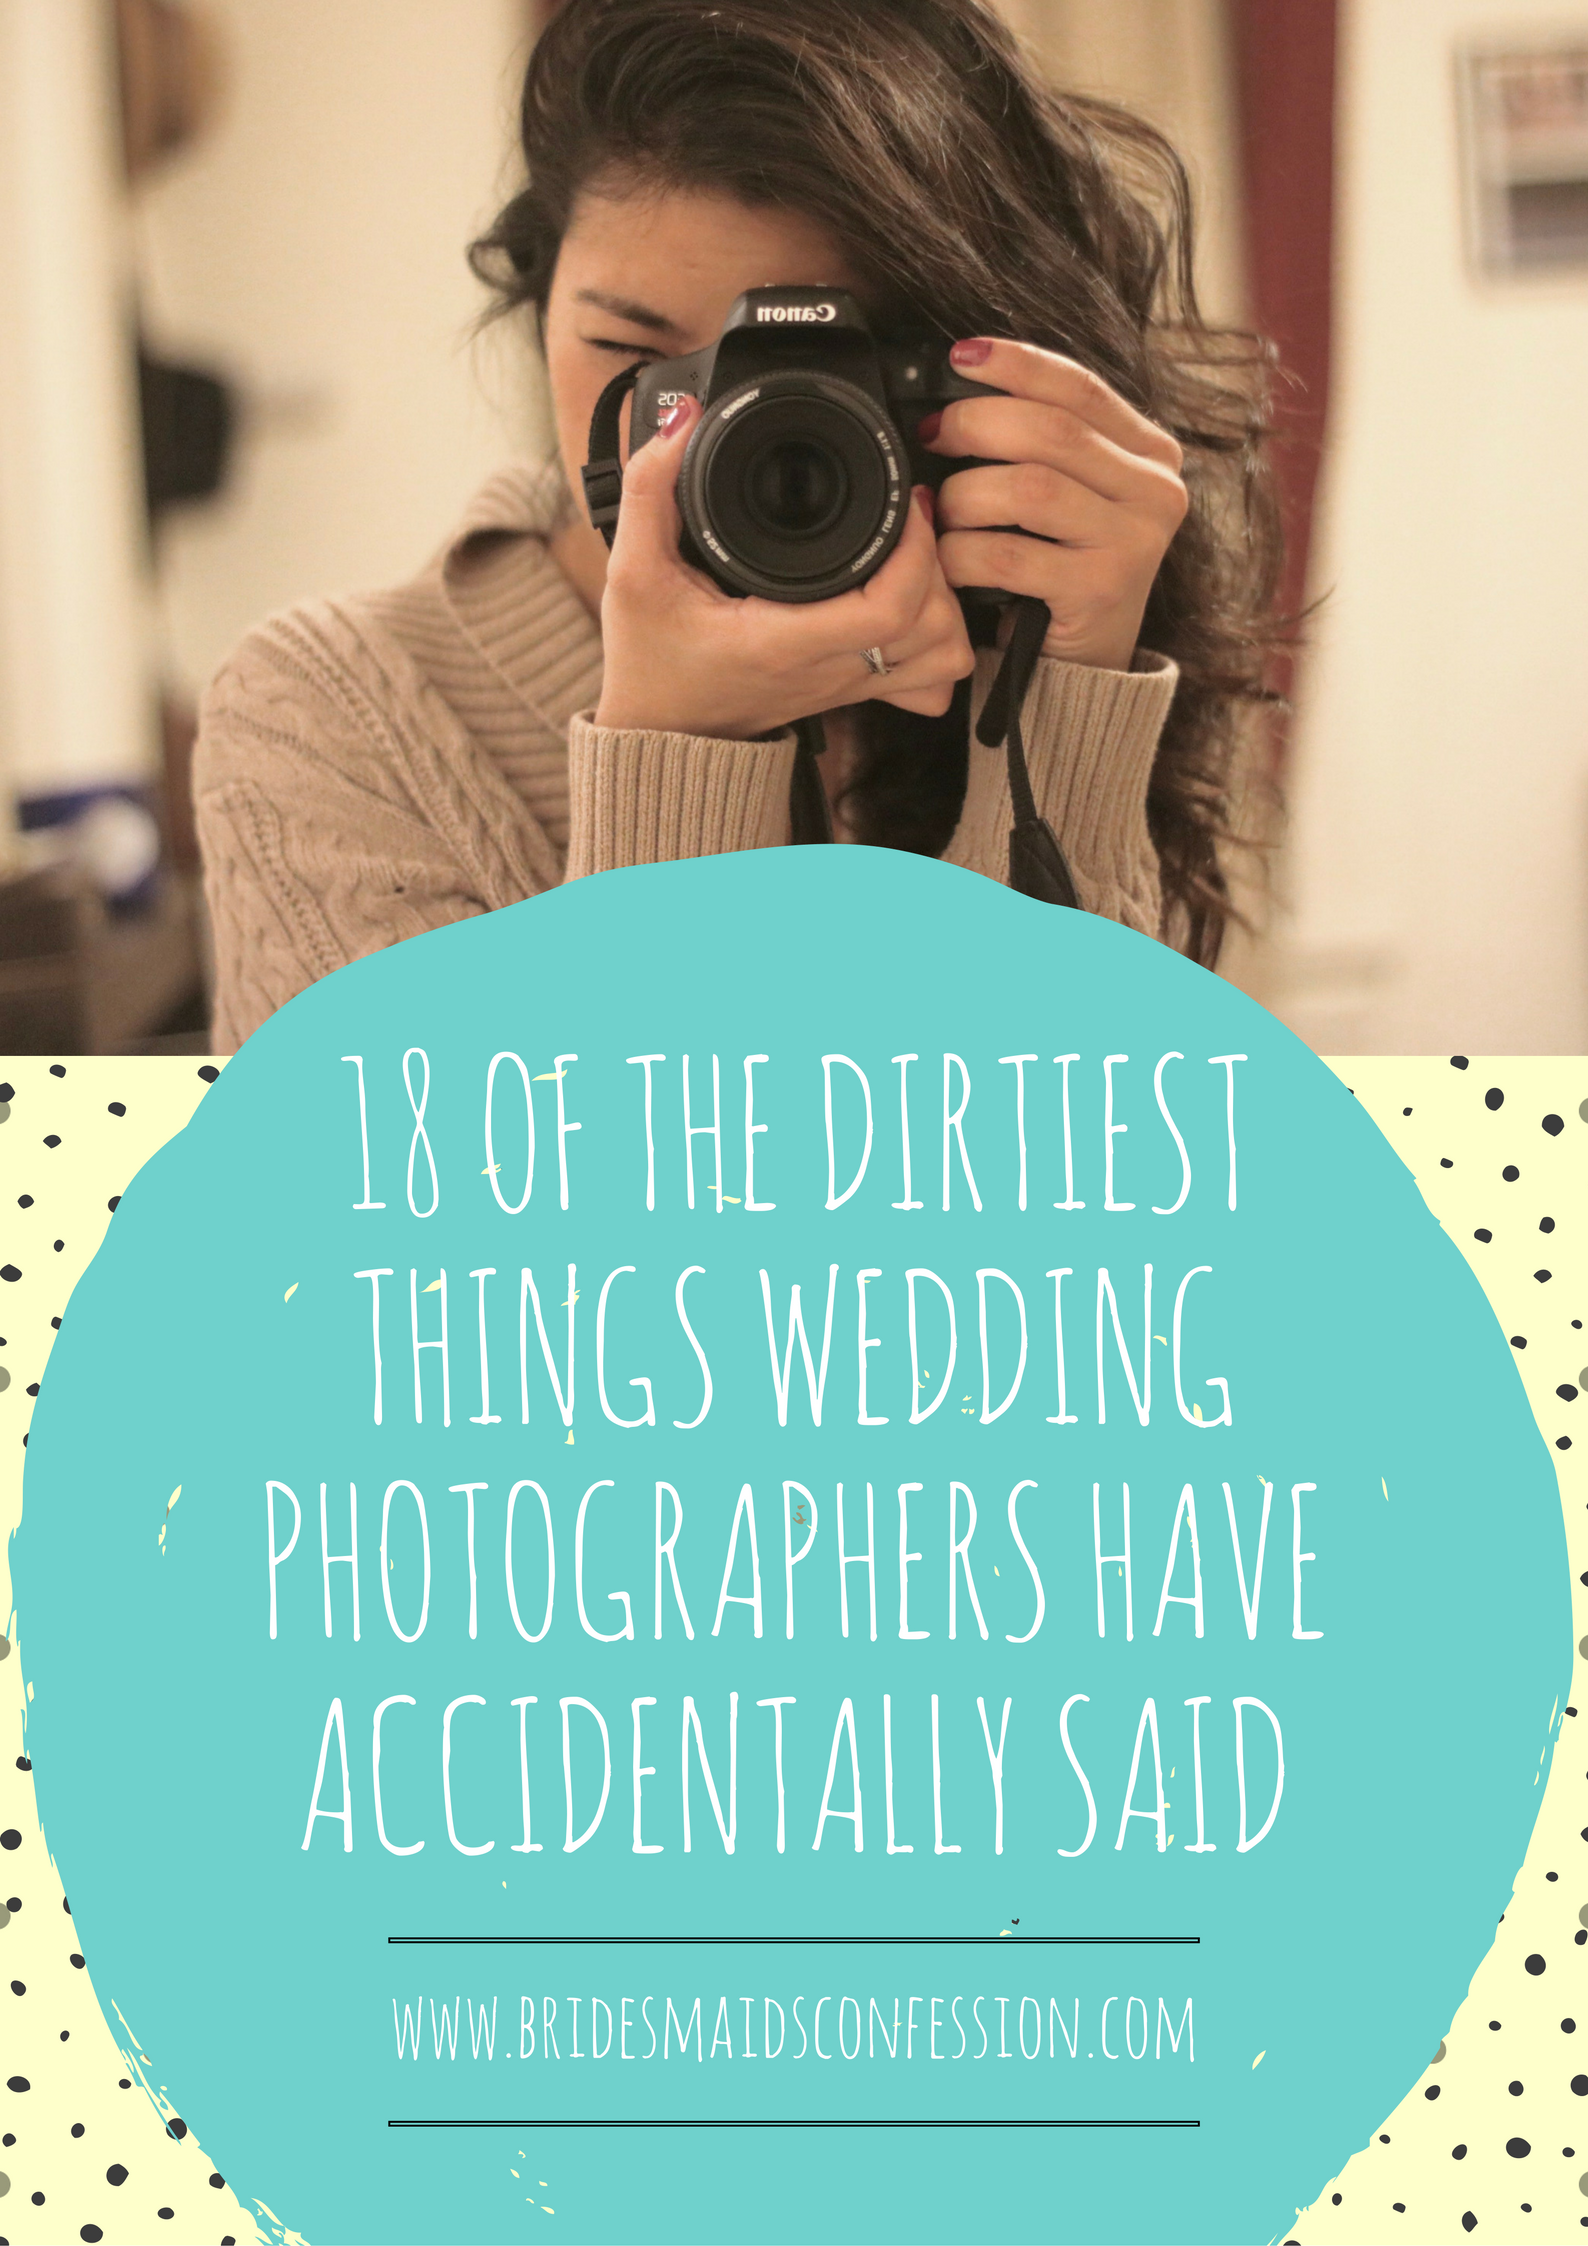 18 of the Dirtiest Things Wedding Photographers Have Accidentally Said. bridesmaidsconfession.com